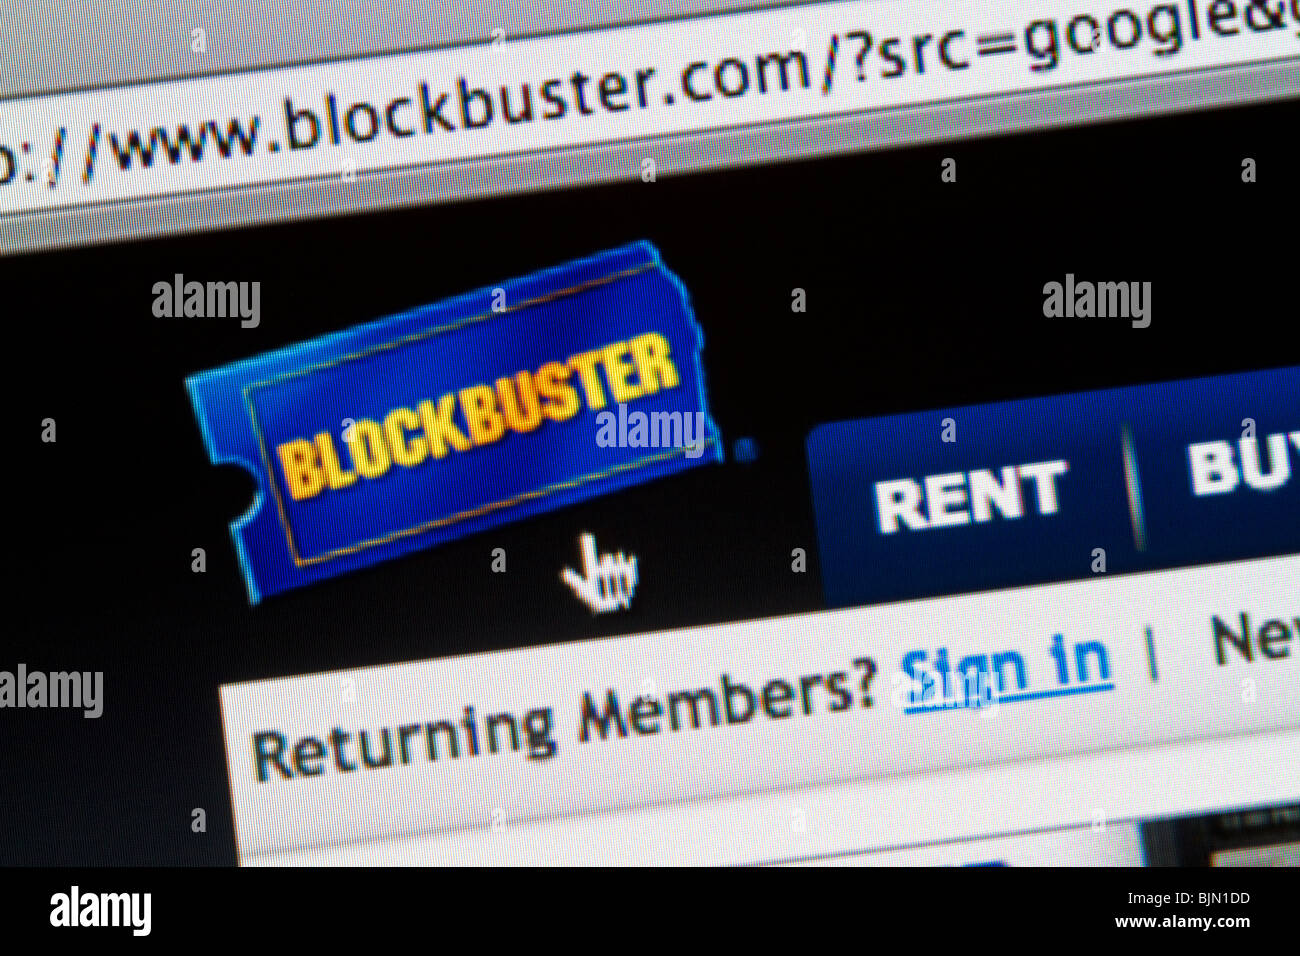 The online website for the Blockbuster video store. Blockbuster.com. - Stock Image